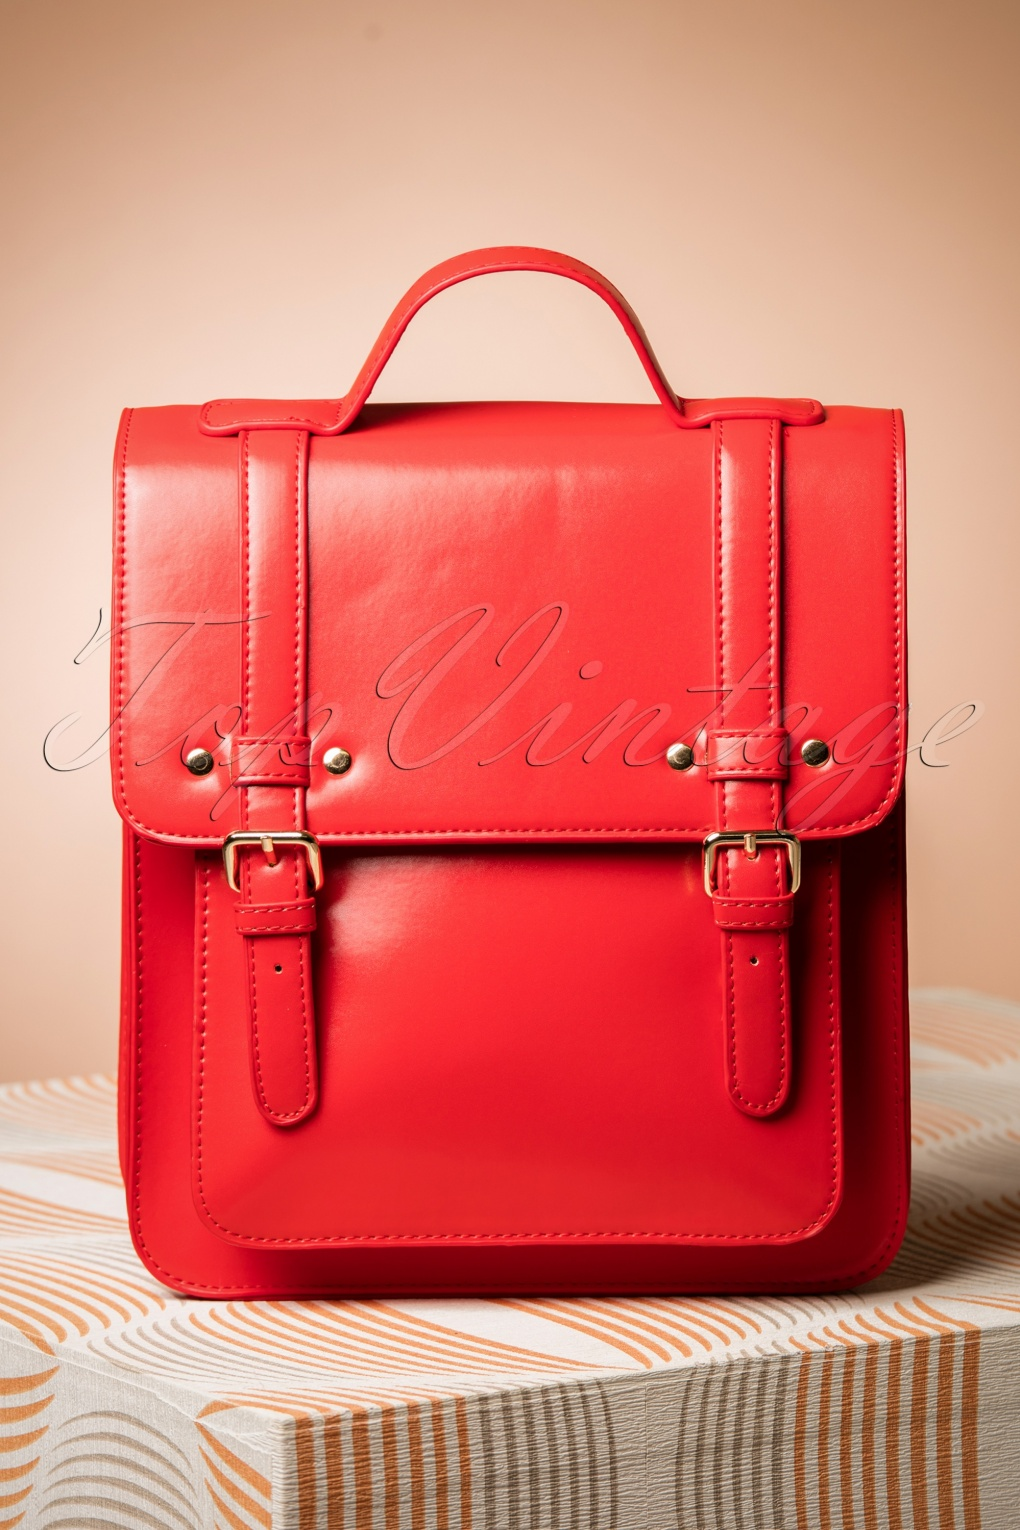 1950s Handbags, Purses, and Evening Bag Styles 60s Cohen Handbag in Radiant Red £38.43 AT vintagedancer.com